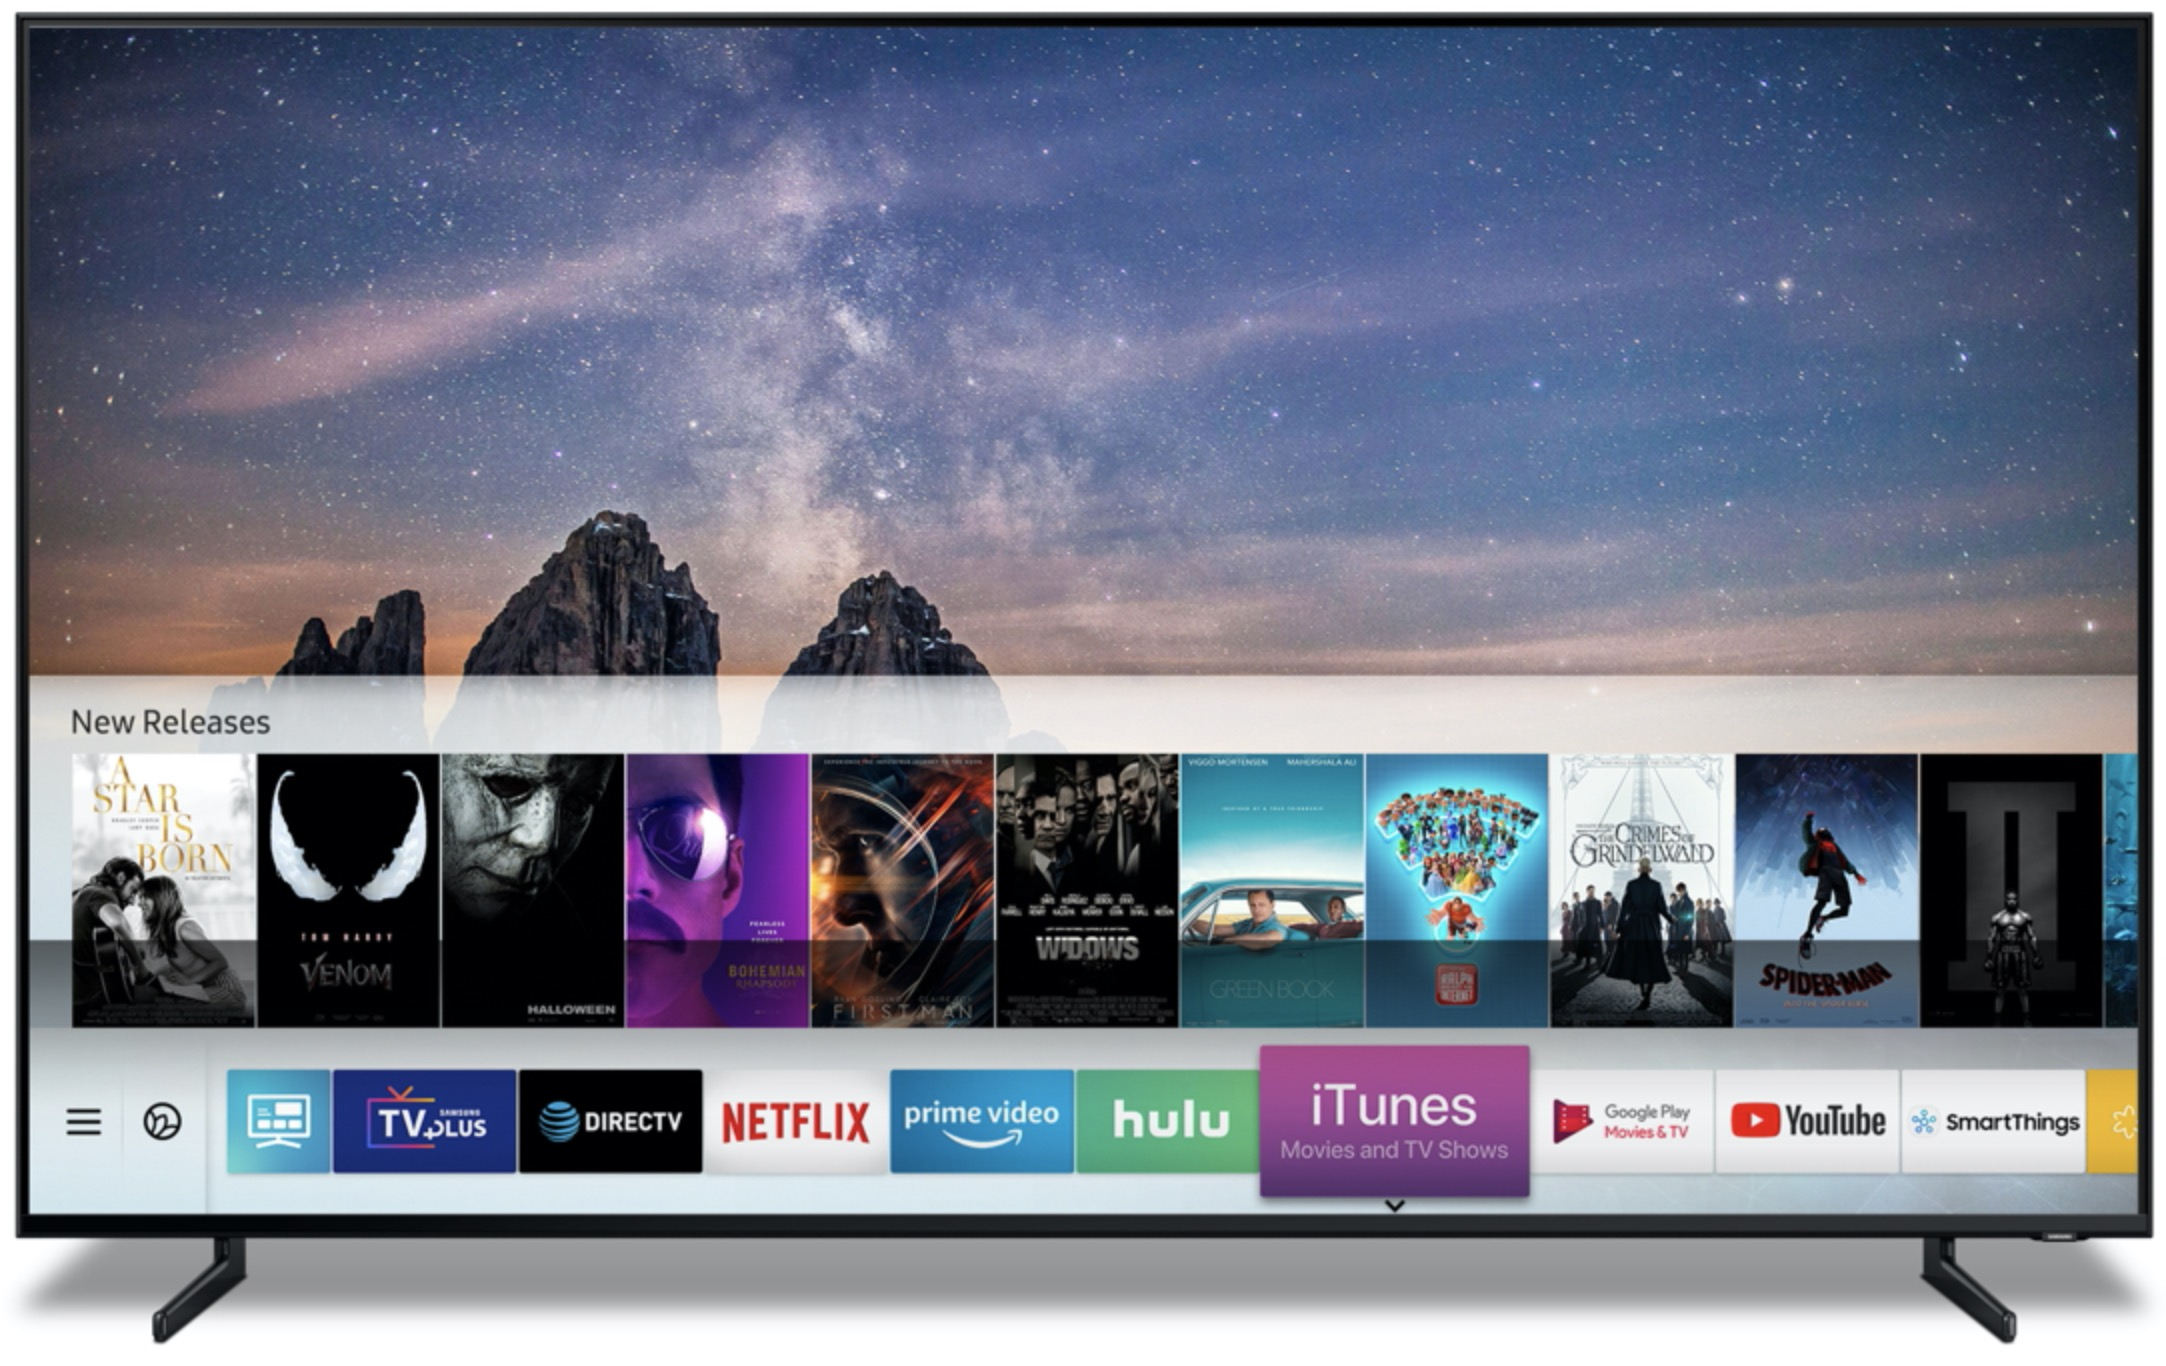 Samsung Smart TVs will support Apple AirPlay 2 and iTunes